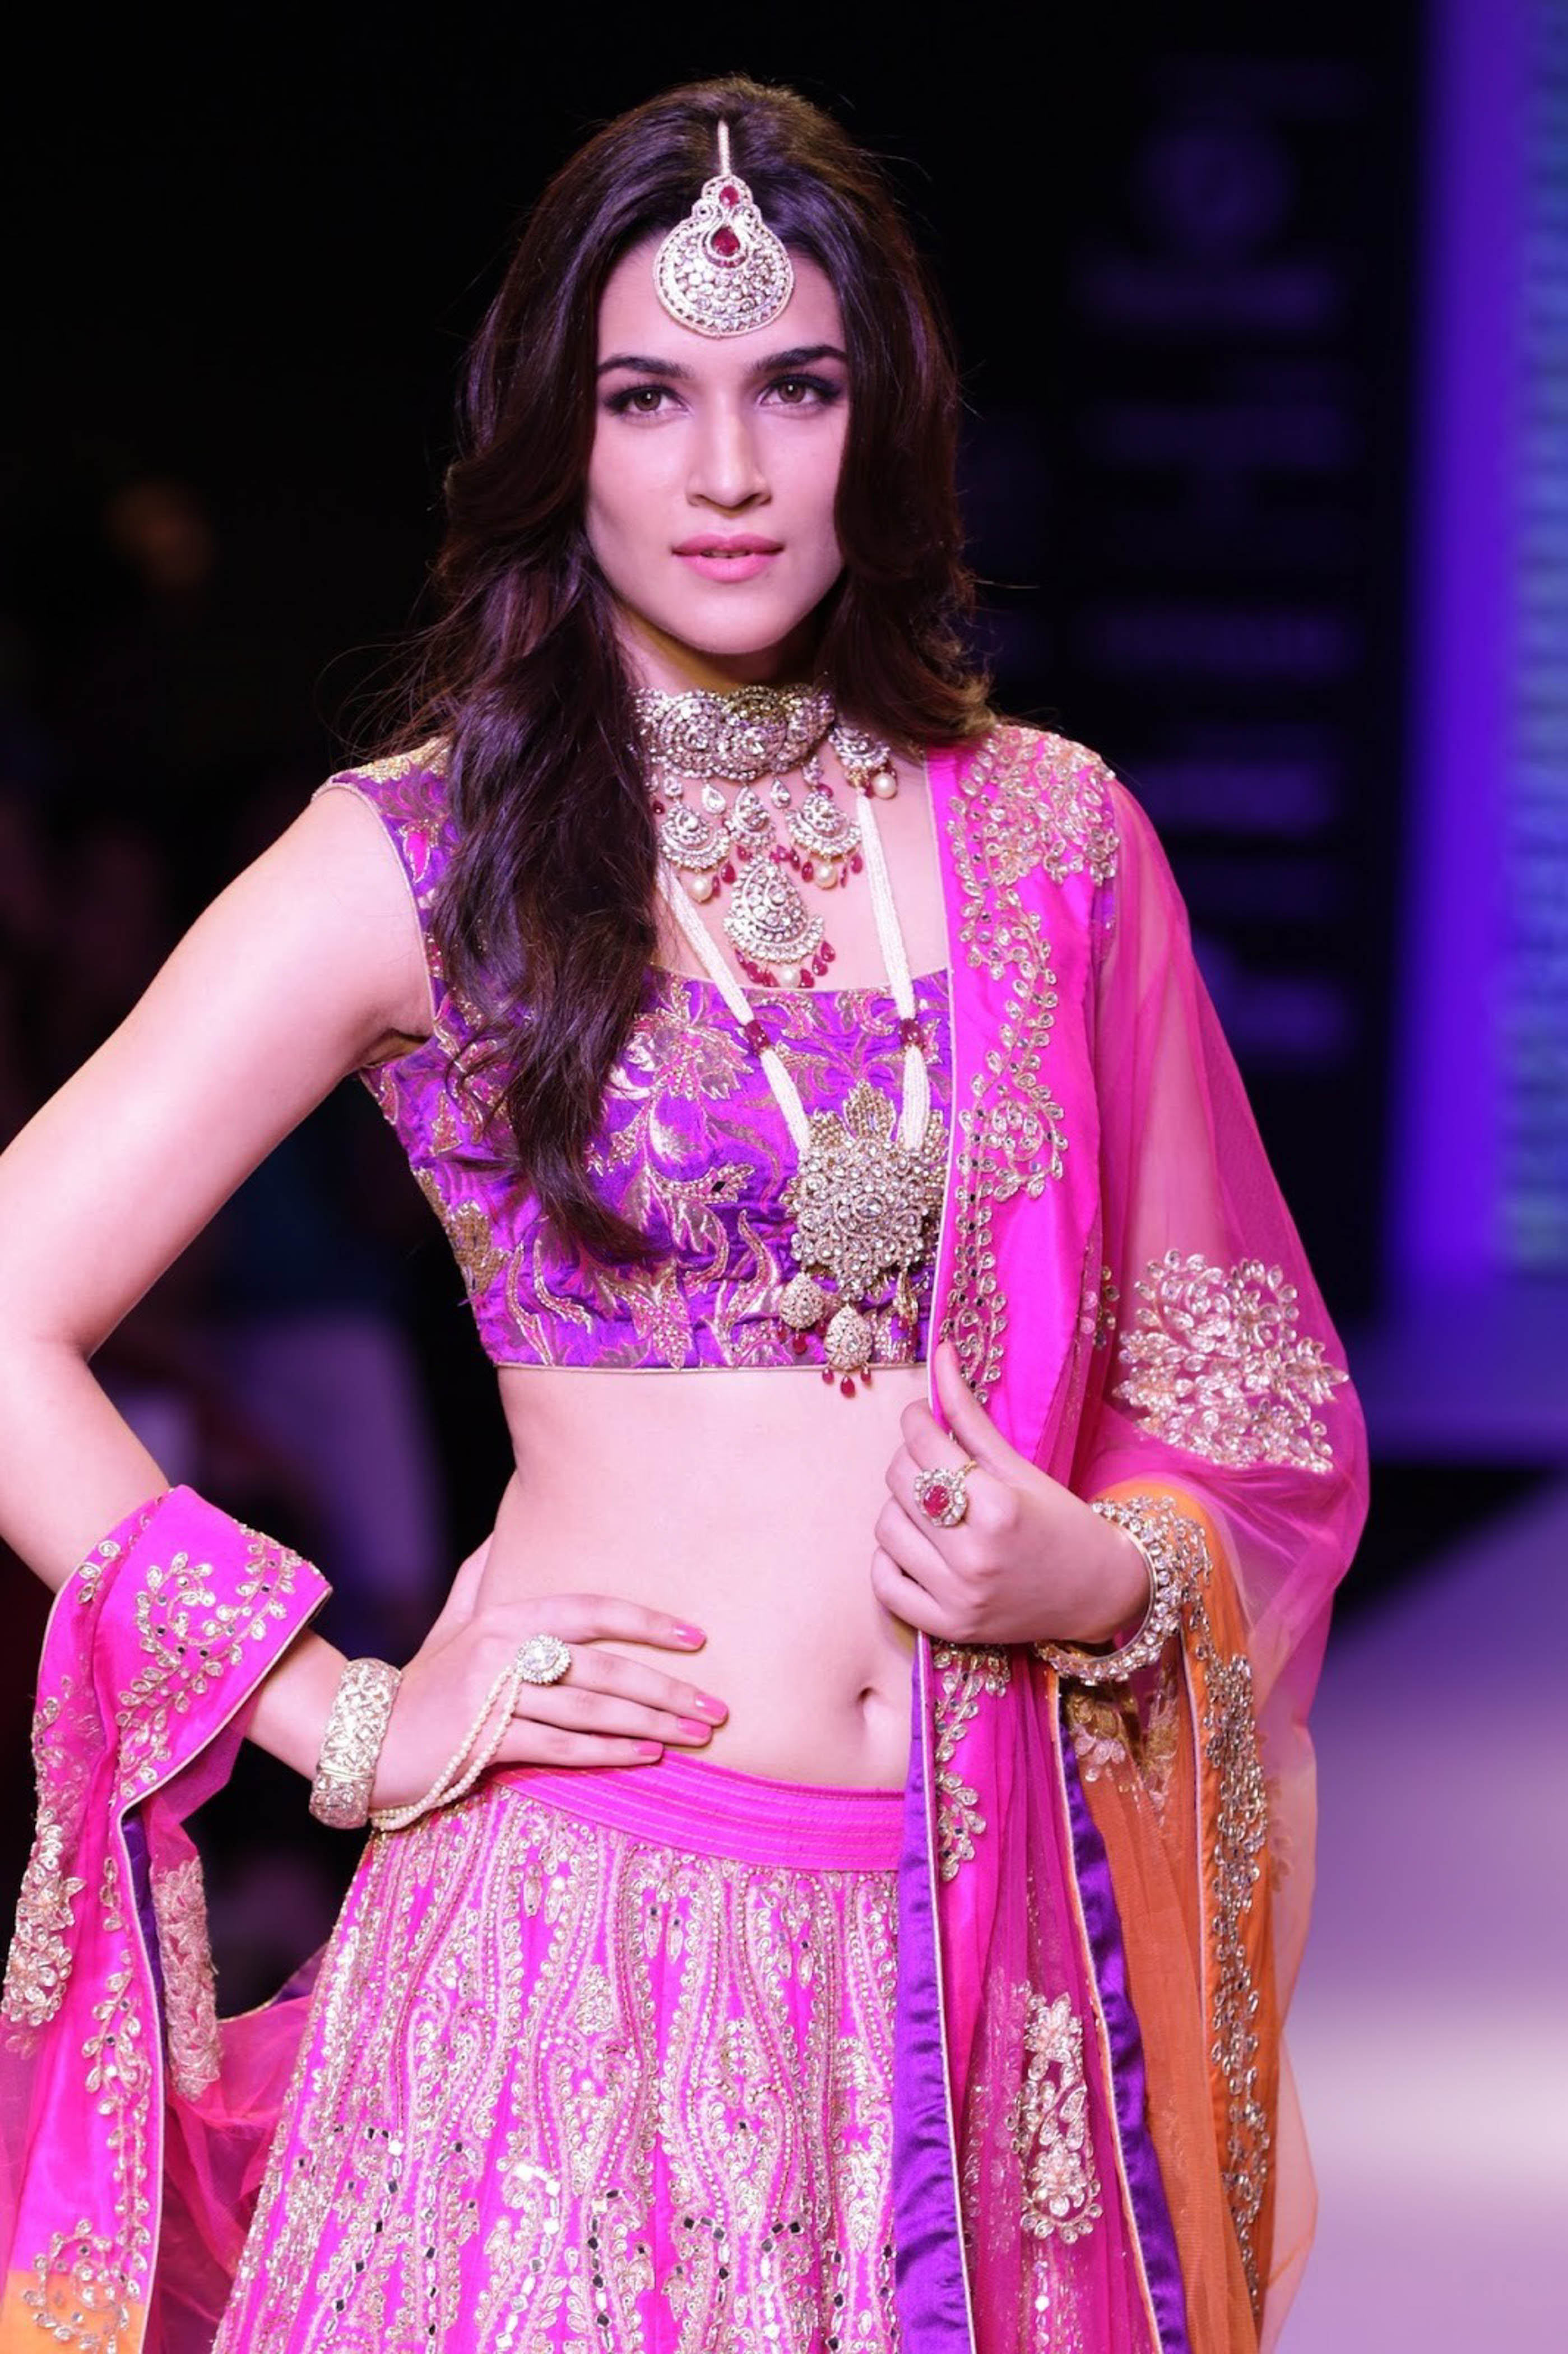 Bridal Jewellery Trends for the Modern Indian Bride - Kriti Sanon - The Maharani Diaries